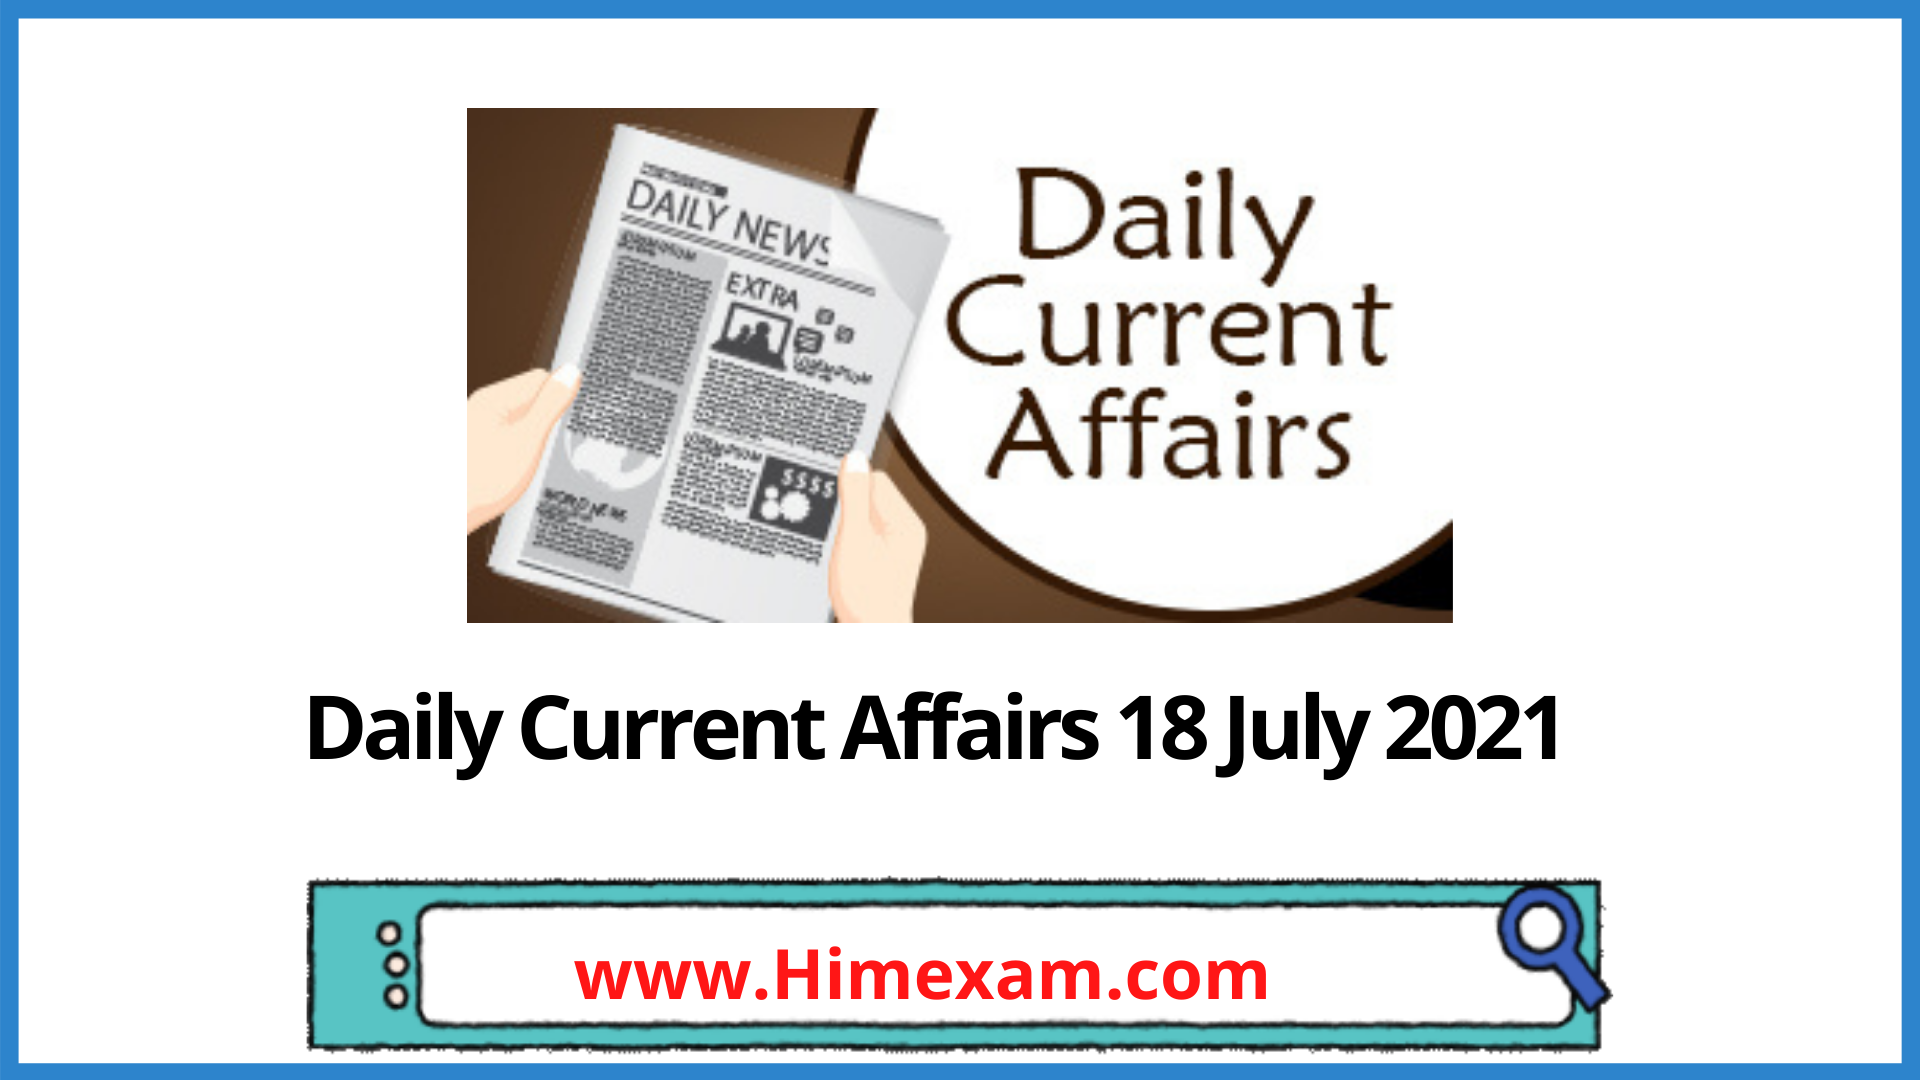 Daily Current Affairs 18 July 2021 In Hindi